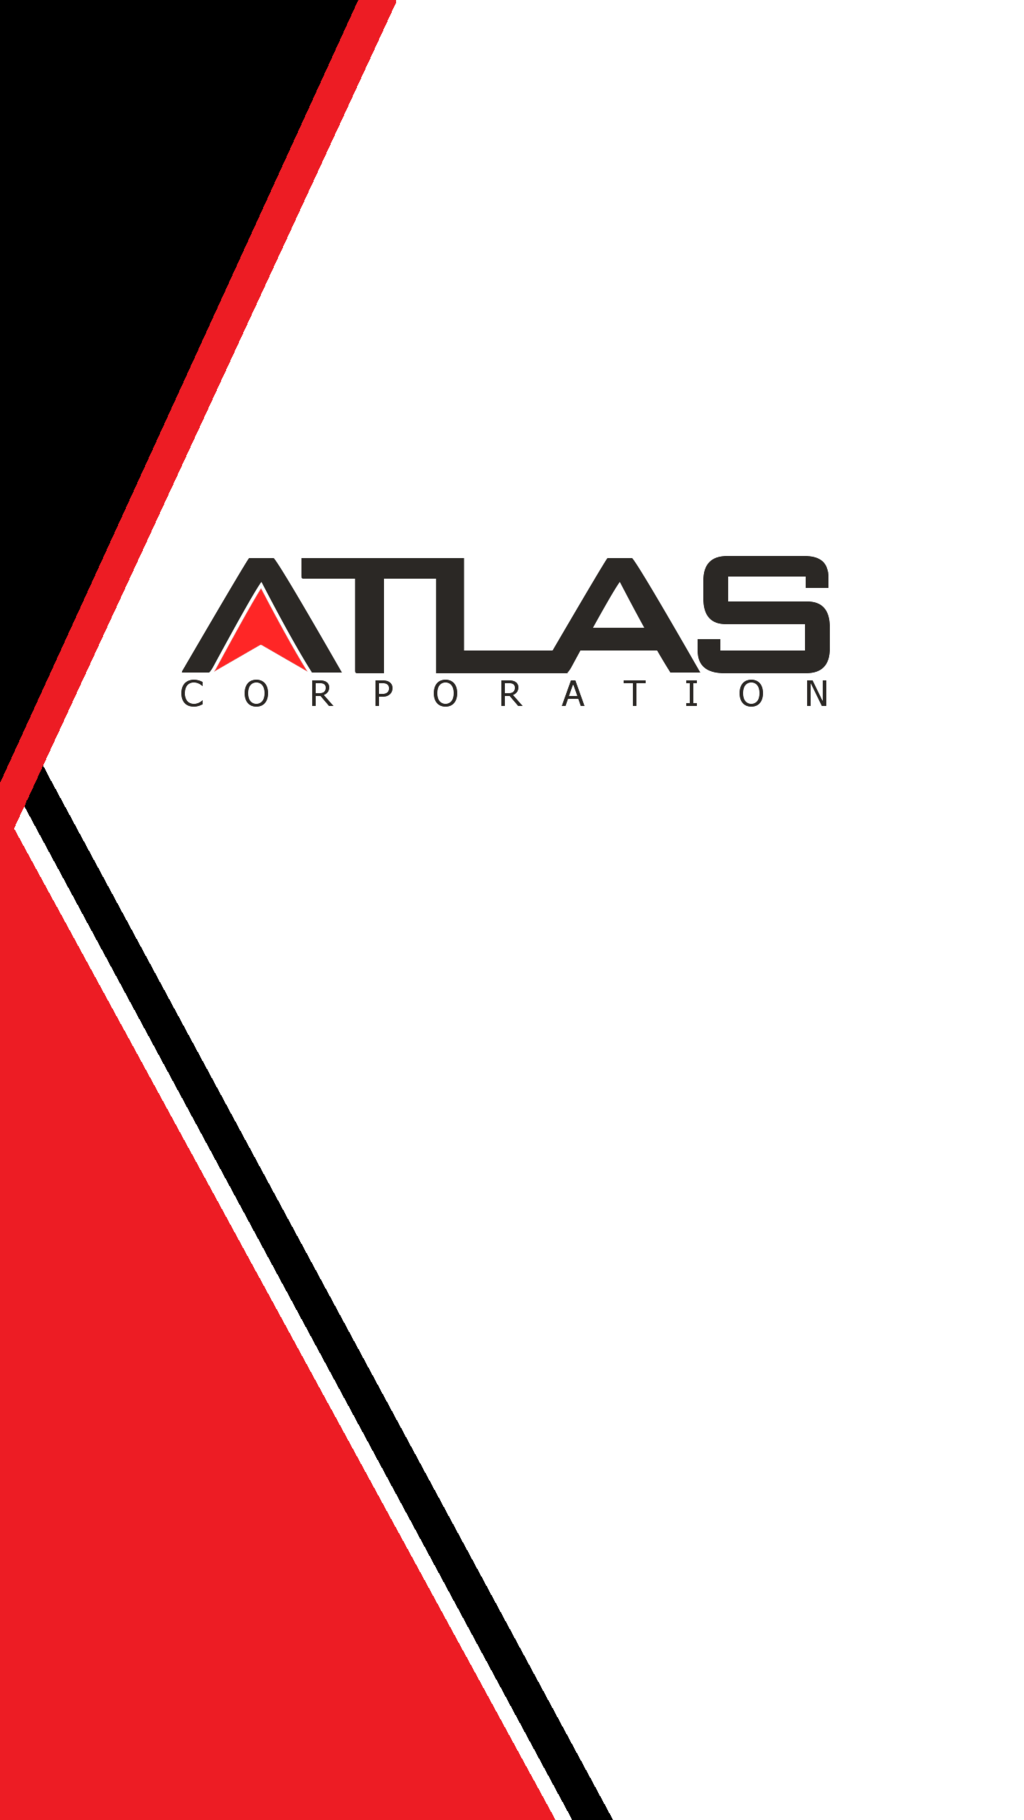 Awesome Atlas Wallpapers | Atlas Wallpapers